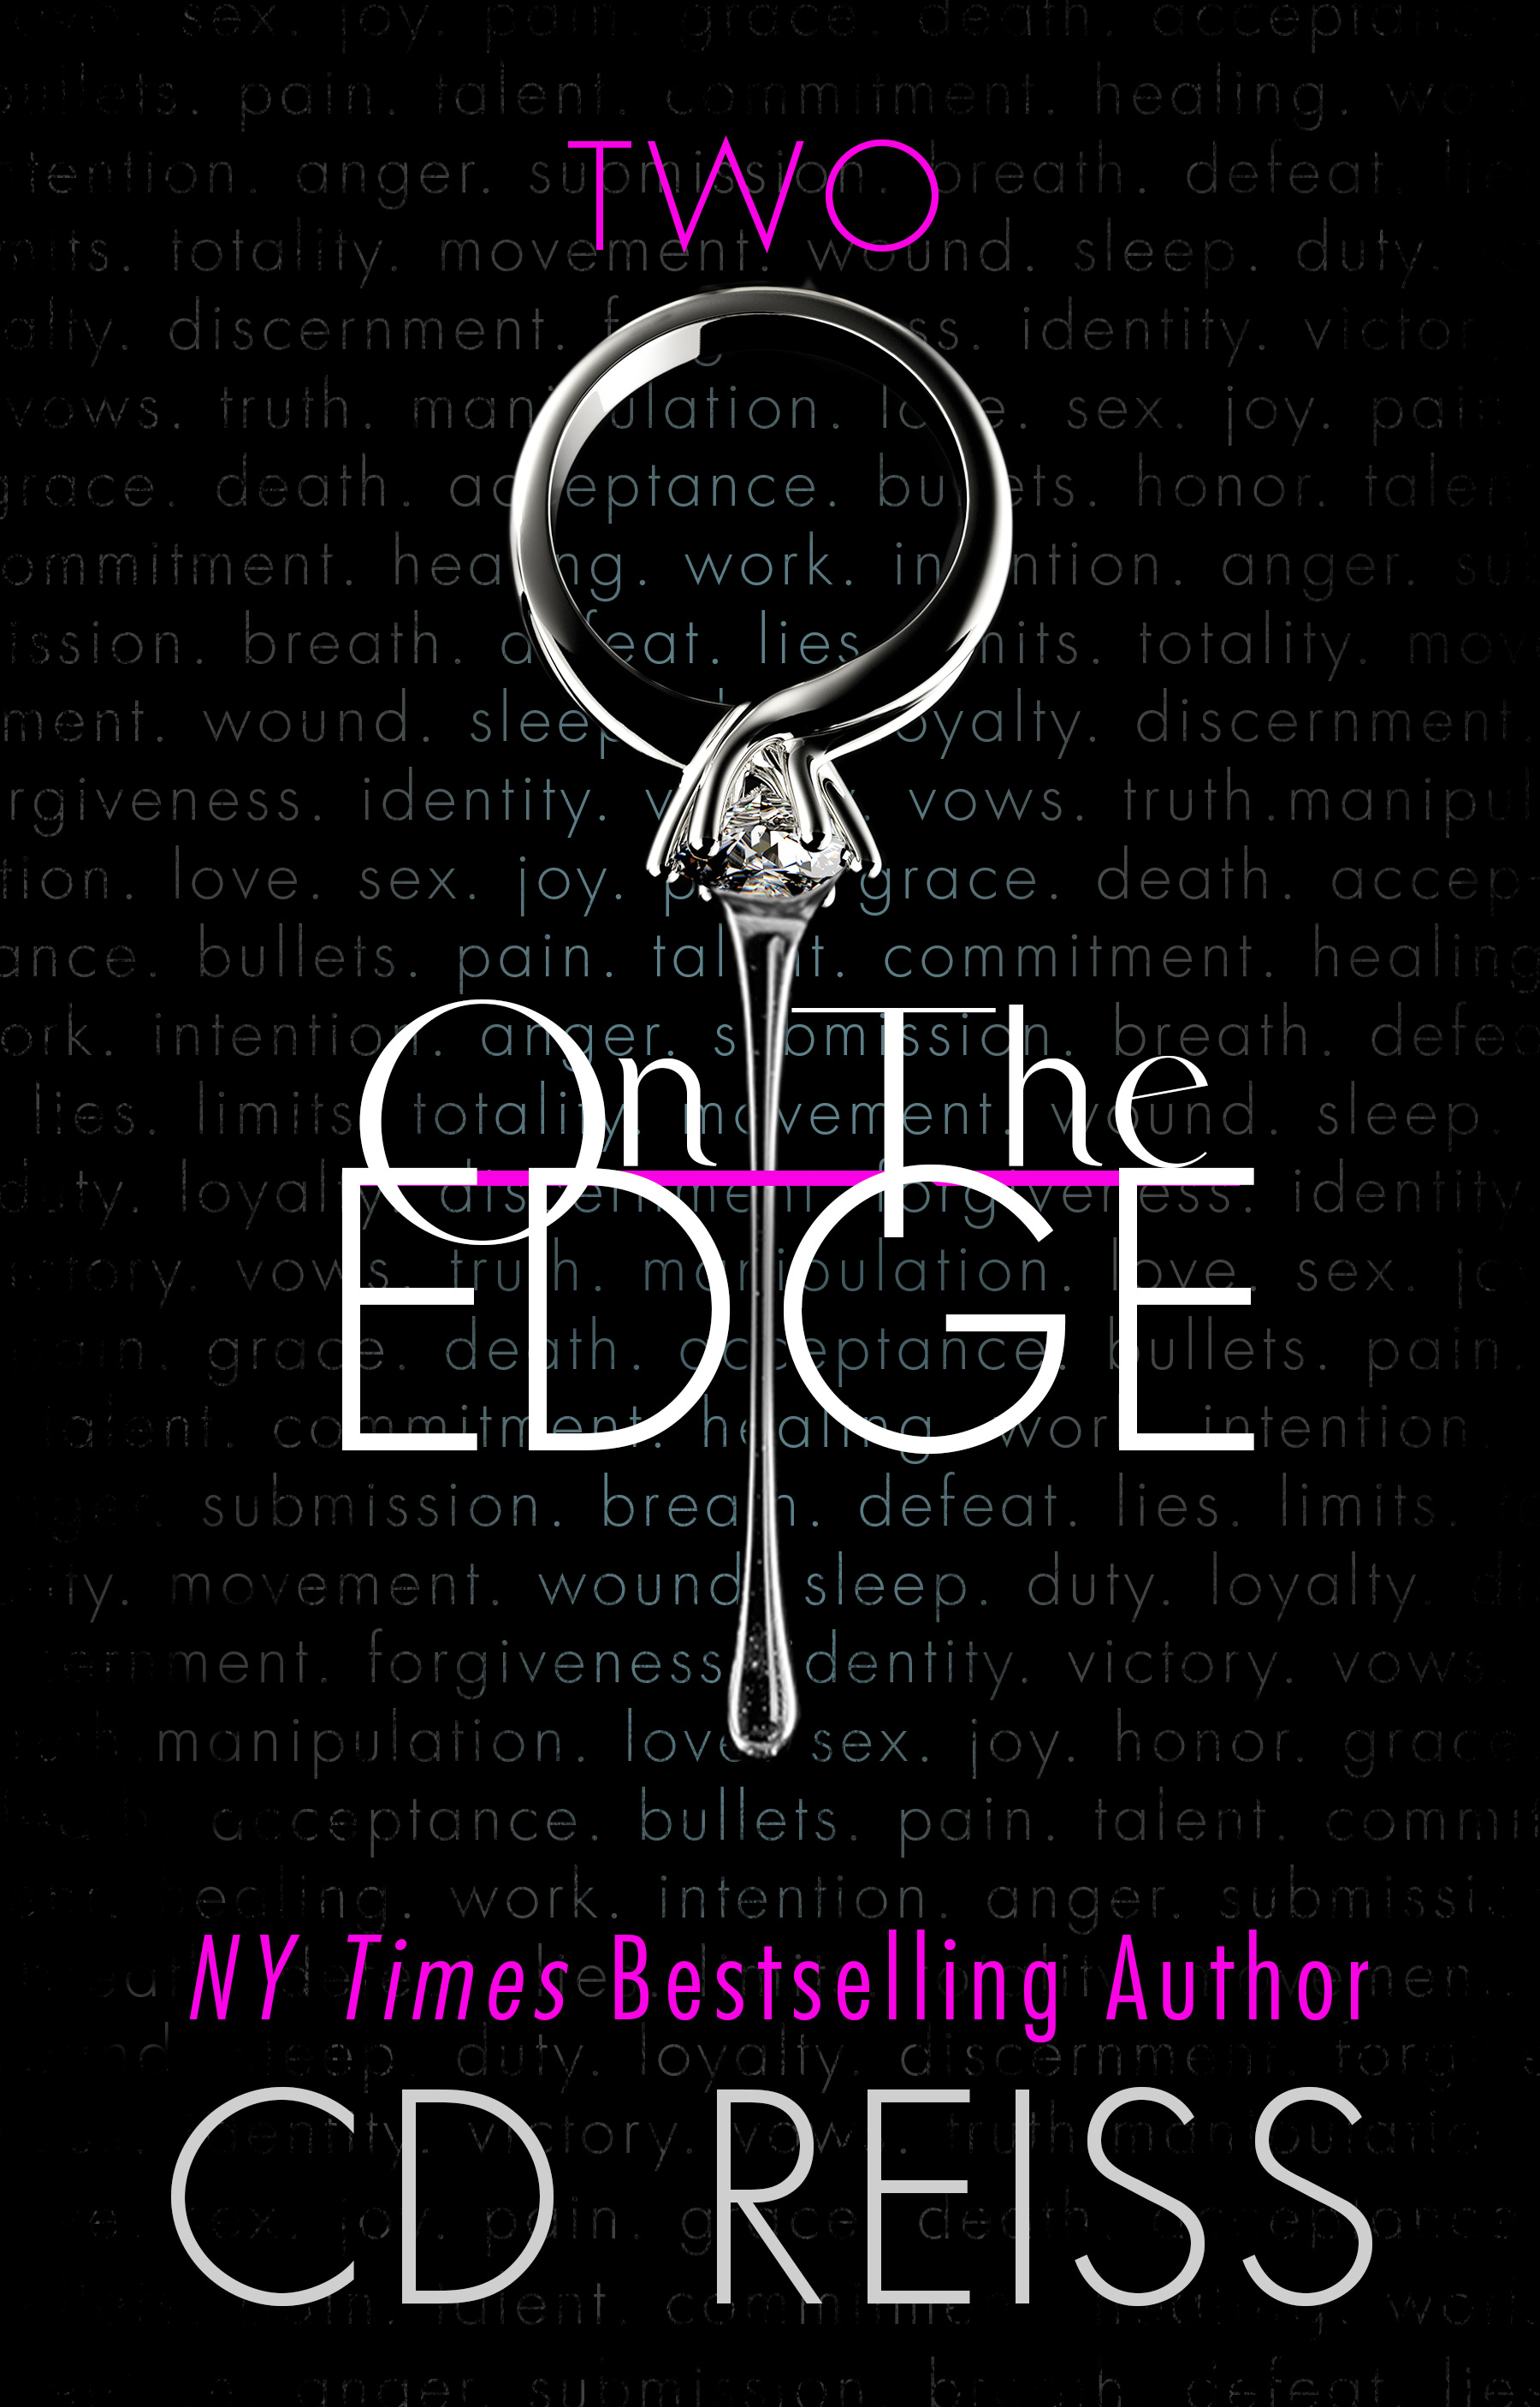 On the Edge CD Reiss